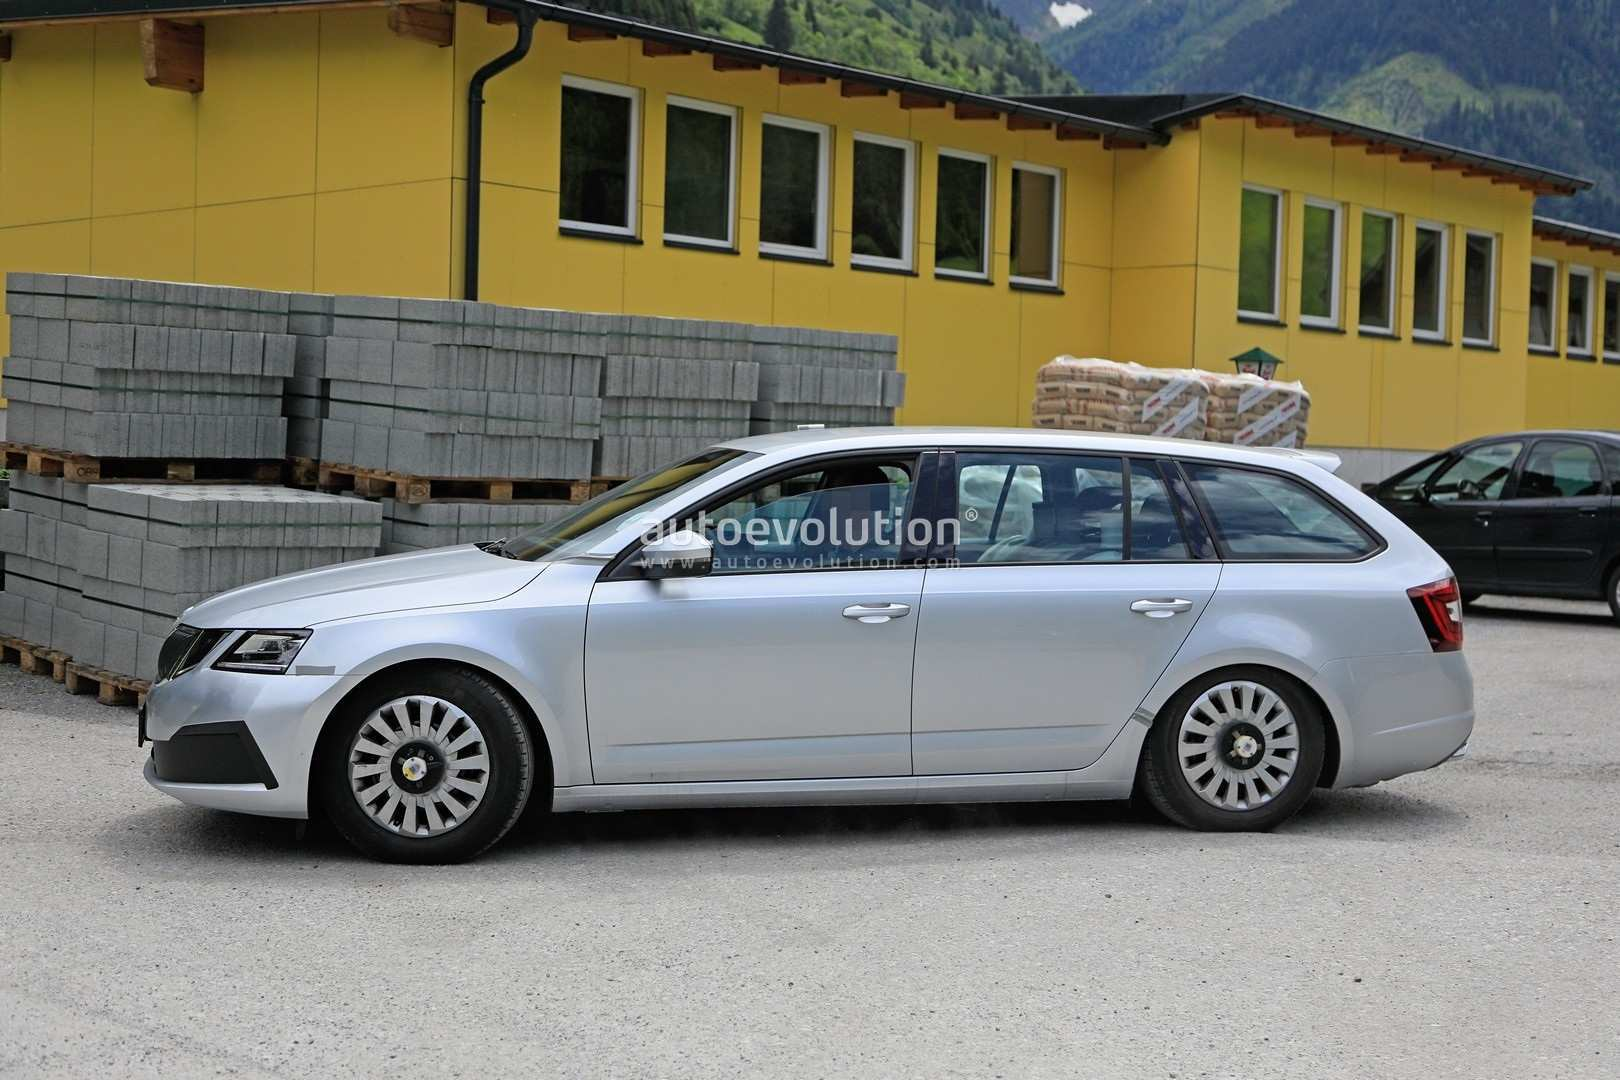 29 All New Spy Shots Skoda Superb Exterior And Interior